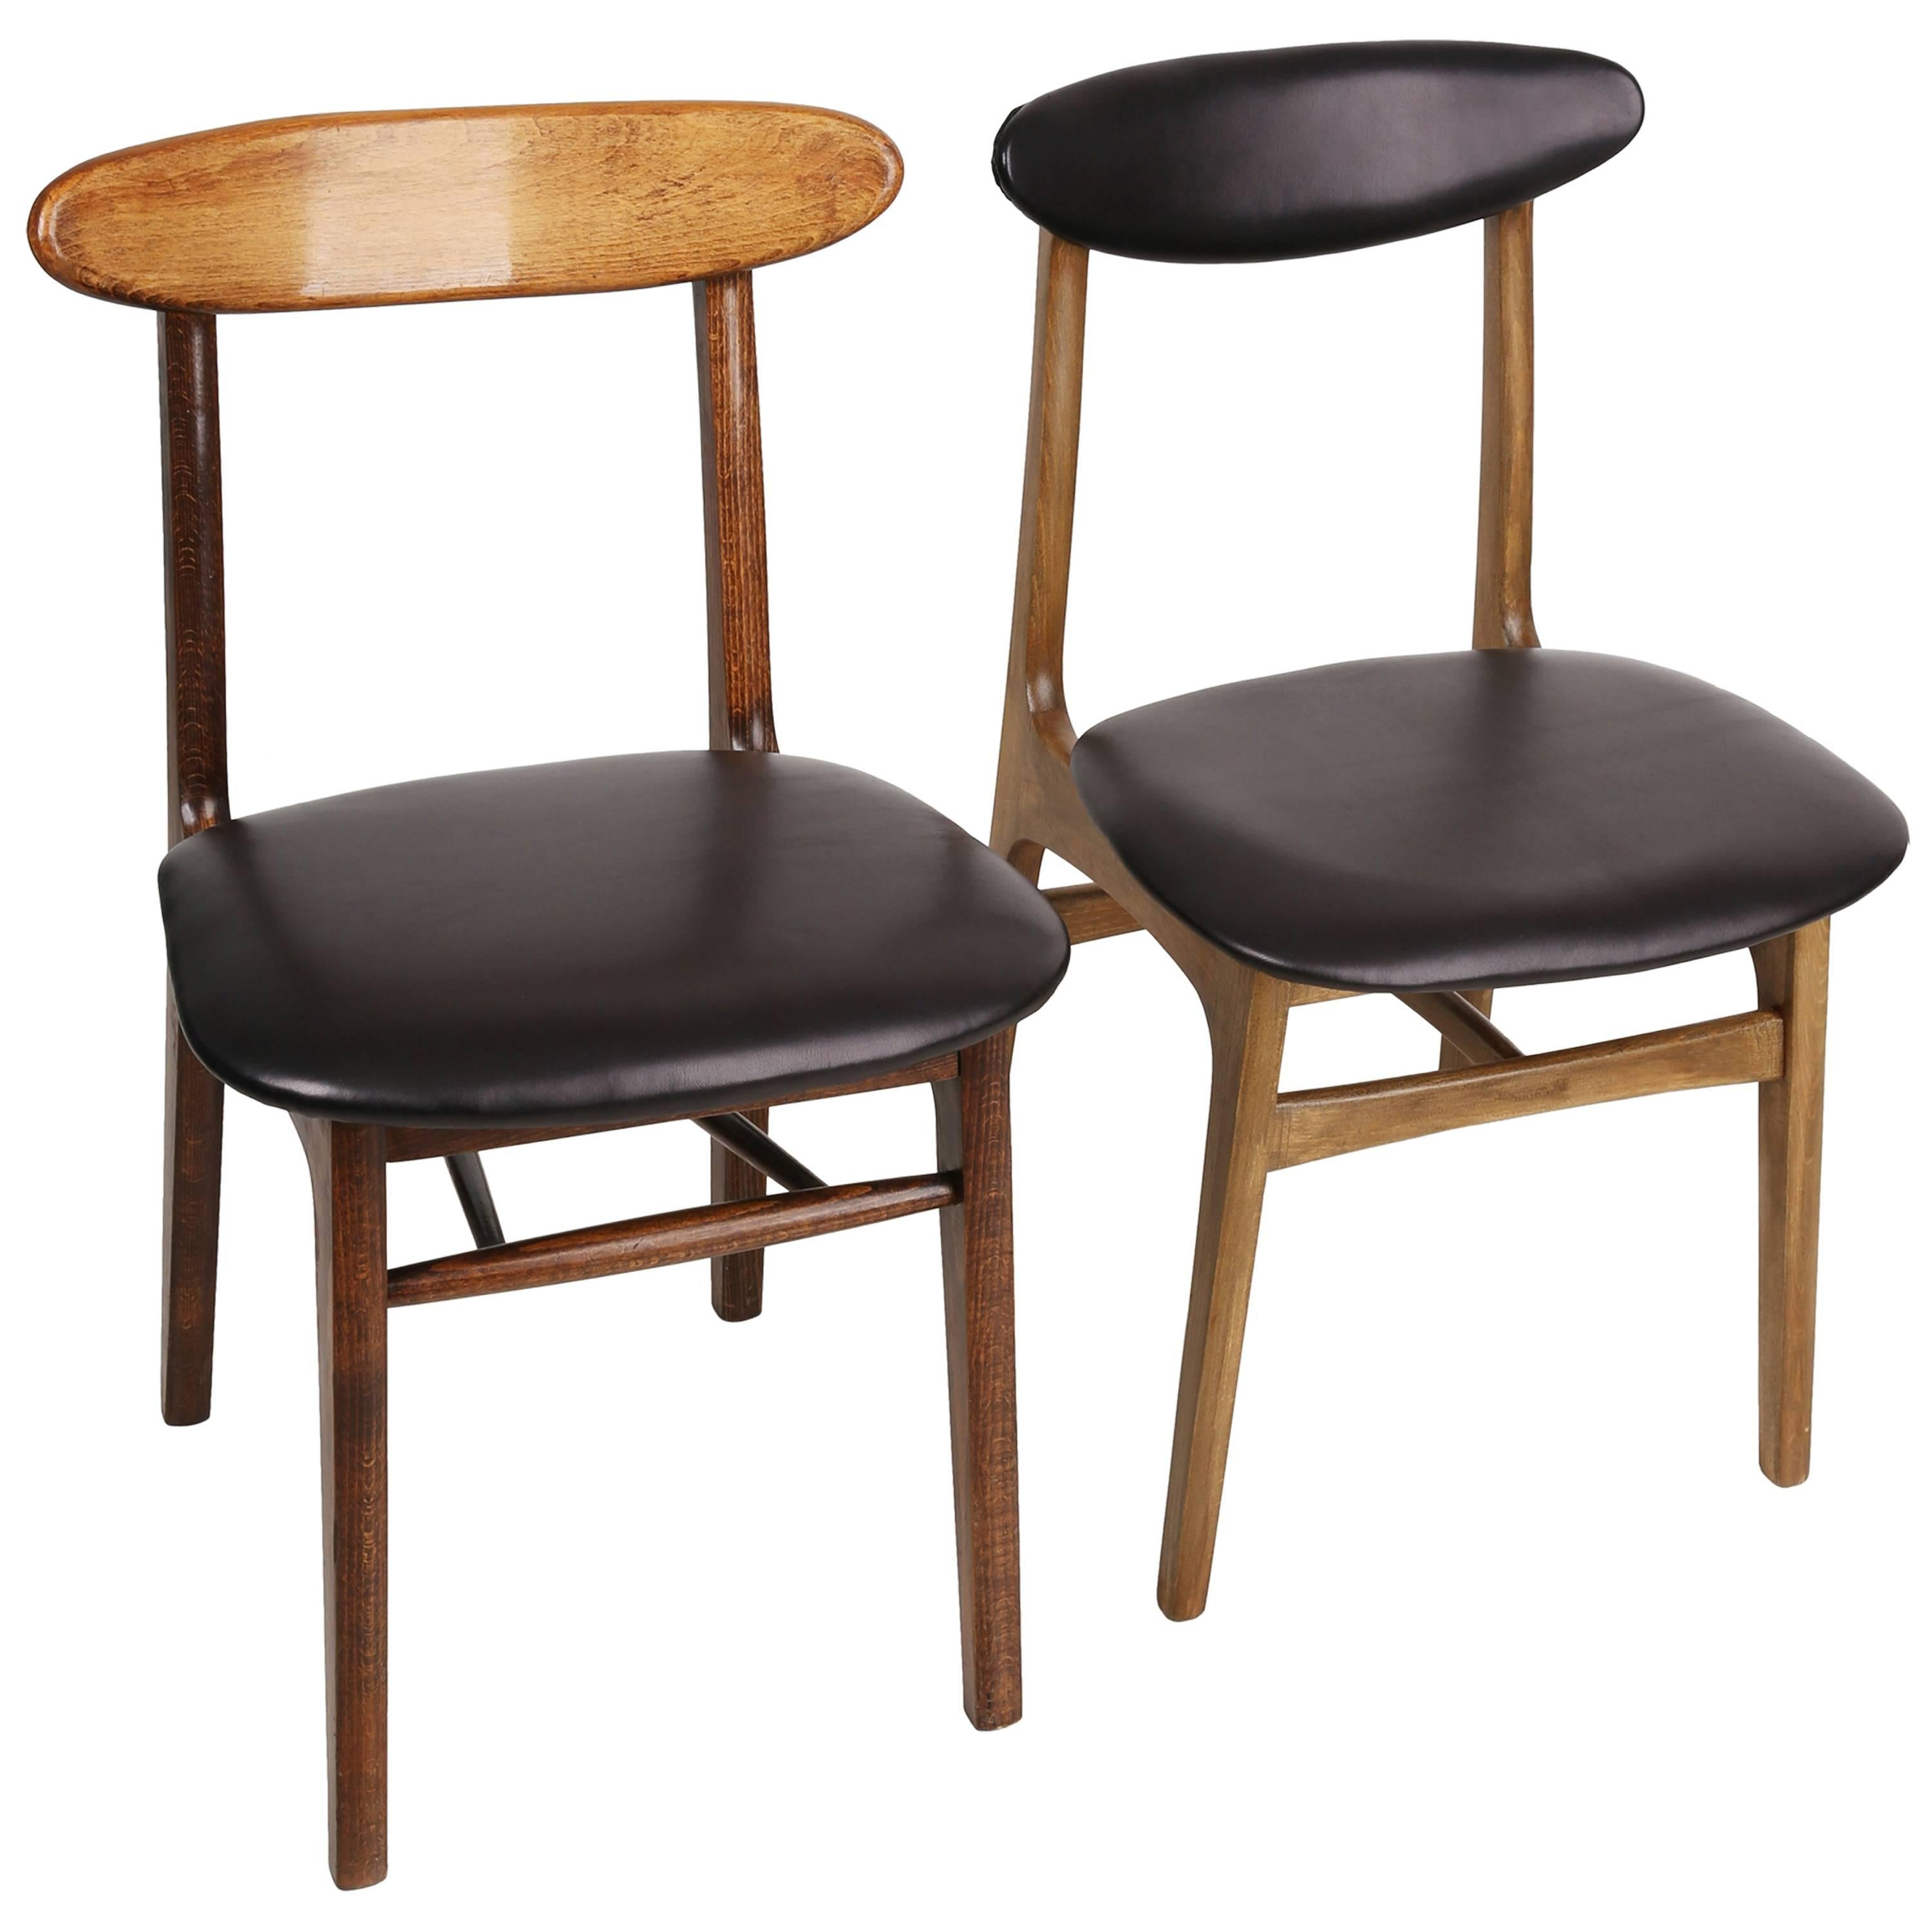 Set of Two Leather 20th Century Black Chairs, 1960s